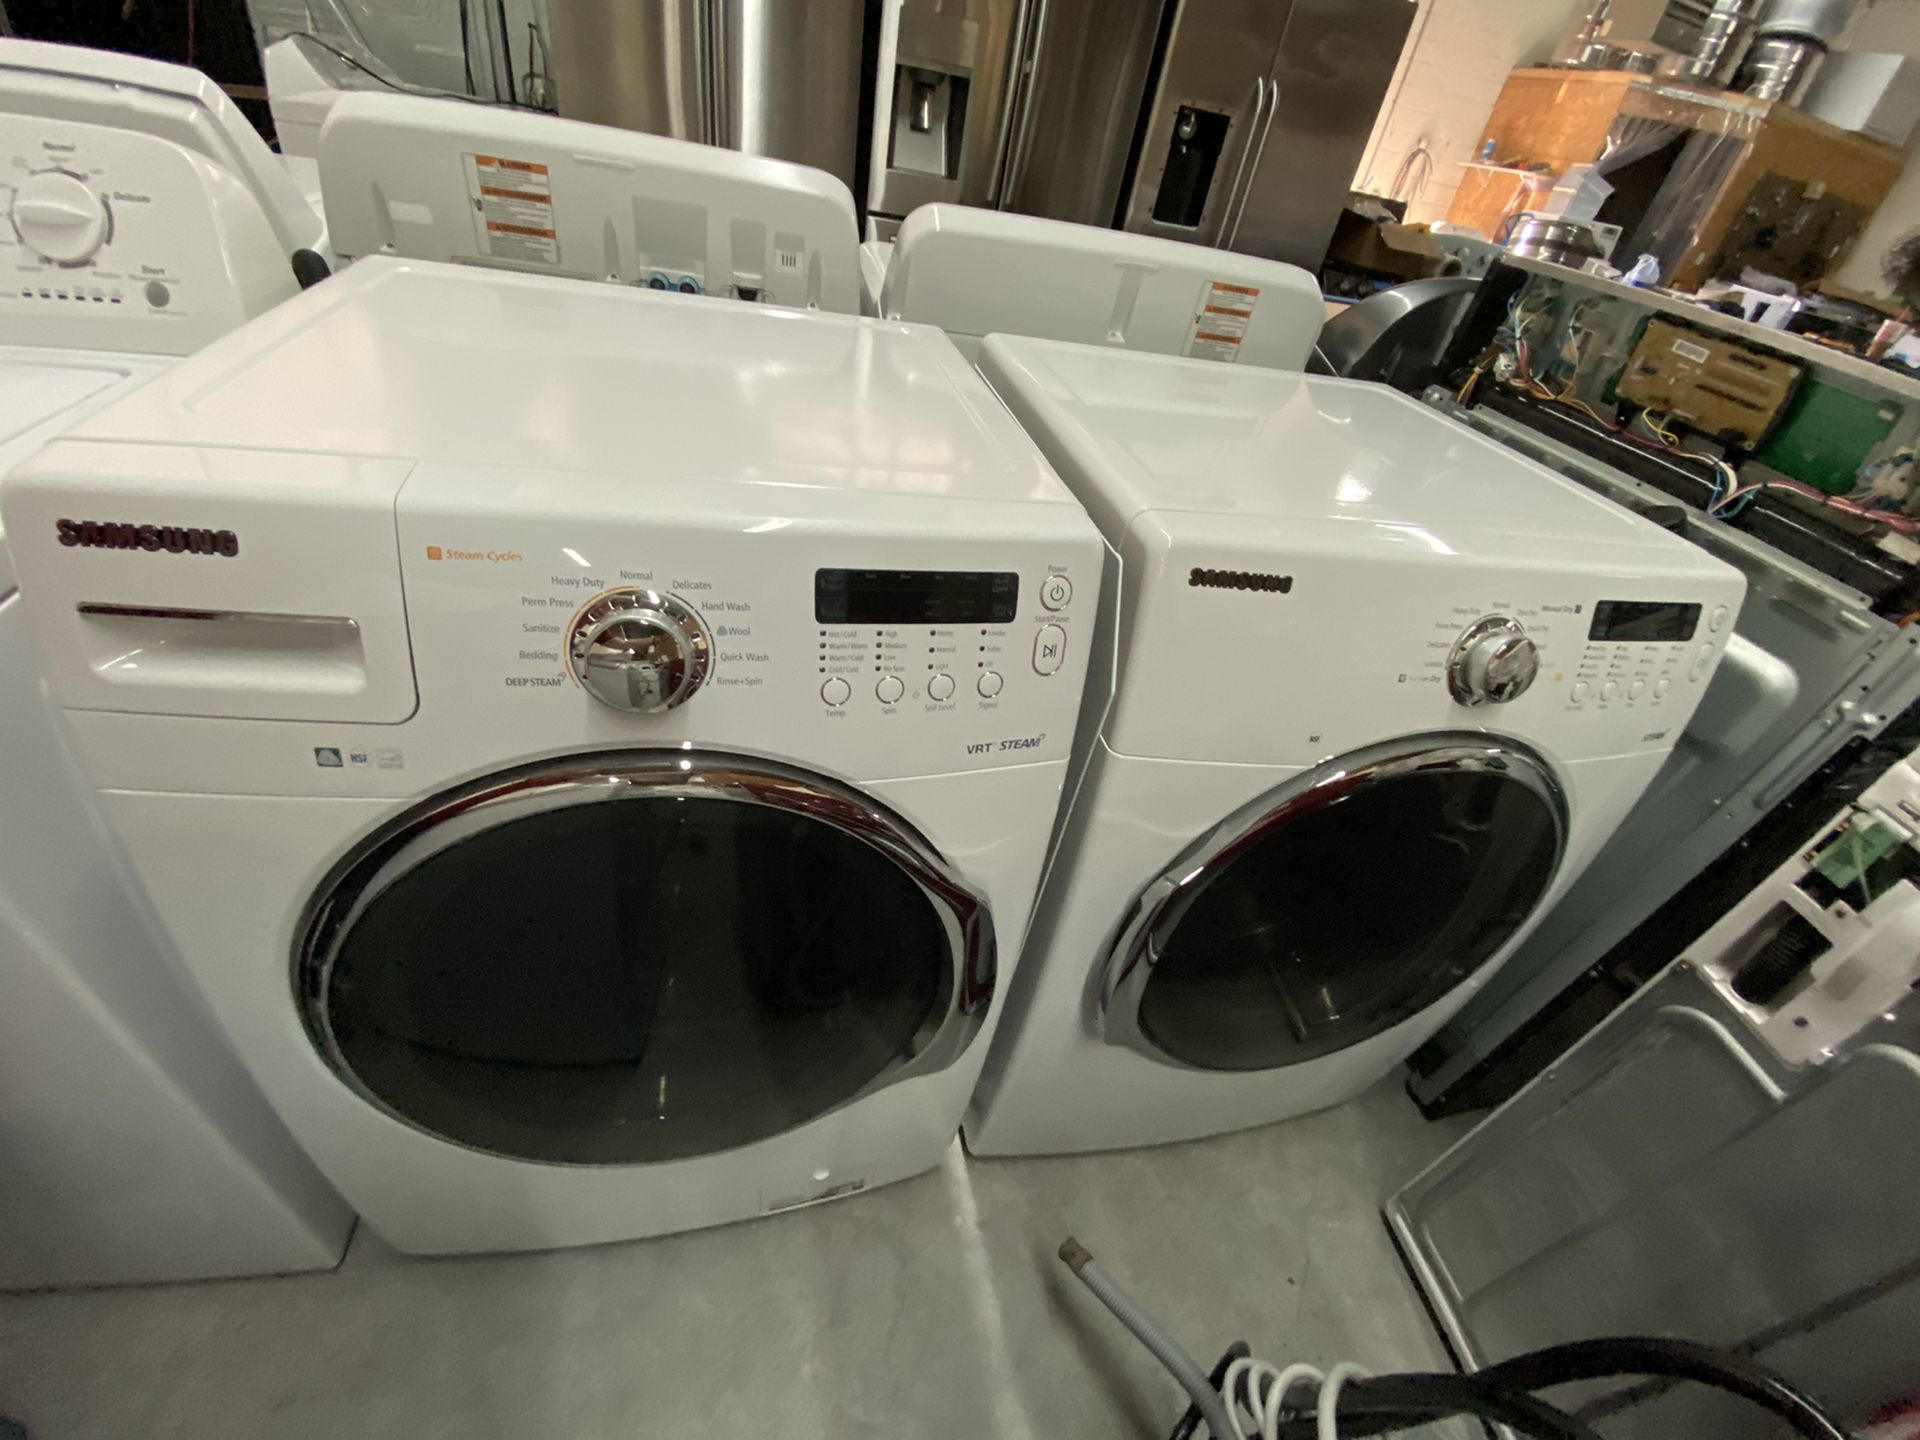 SAMSUNG STEAM HIGH EFFICIENCY FRONT LOAD WASHER AND DRYER 4 MONTH WARRANTY